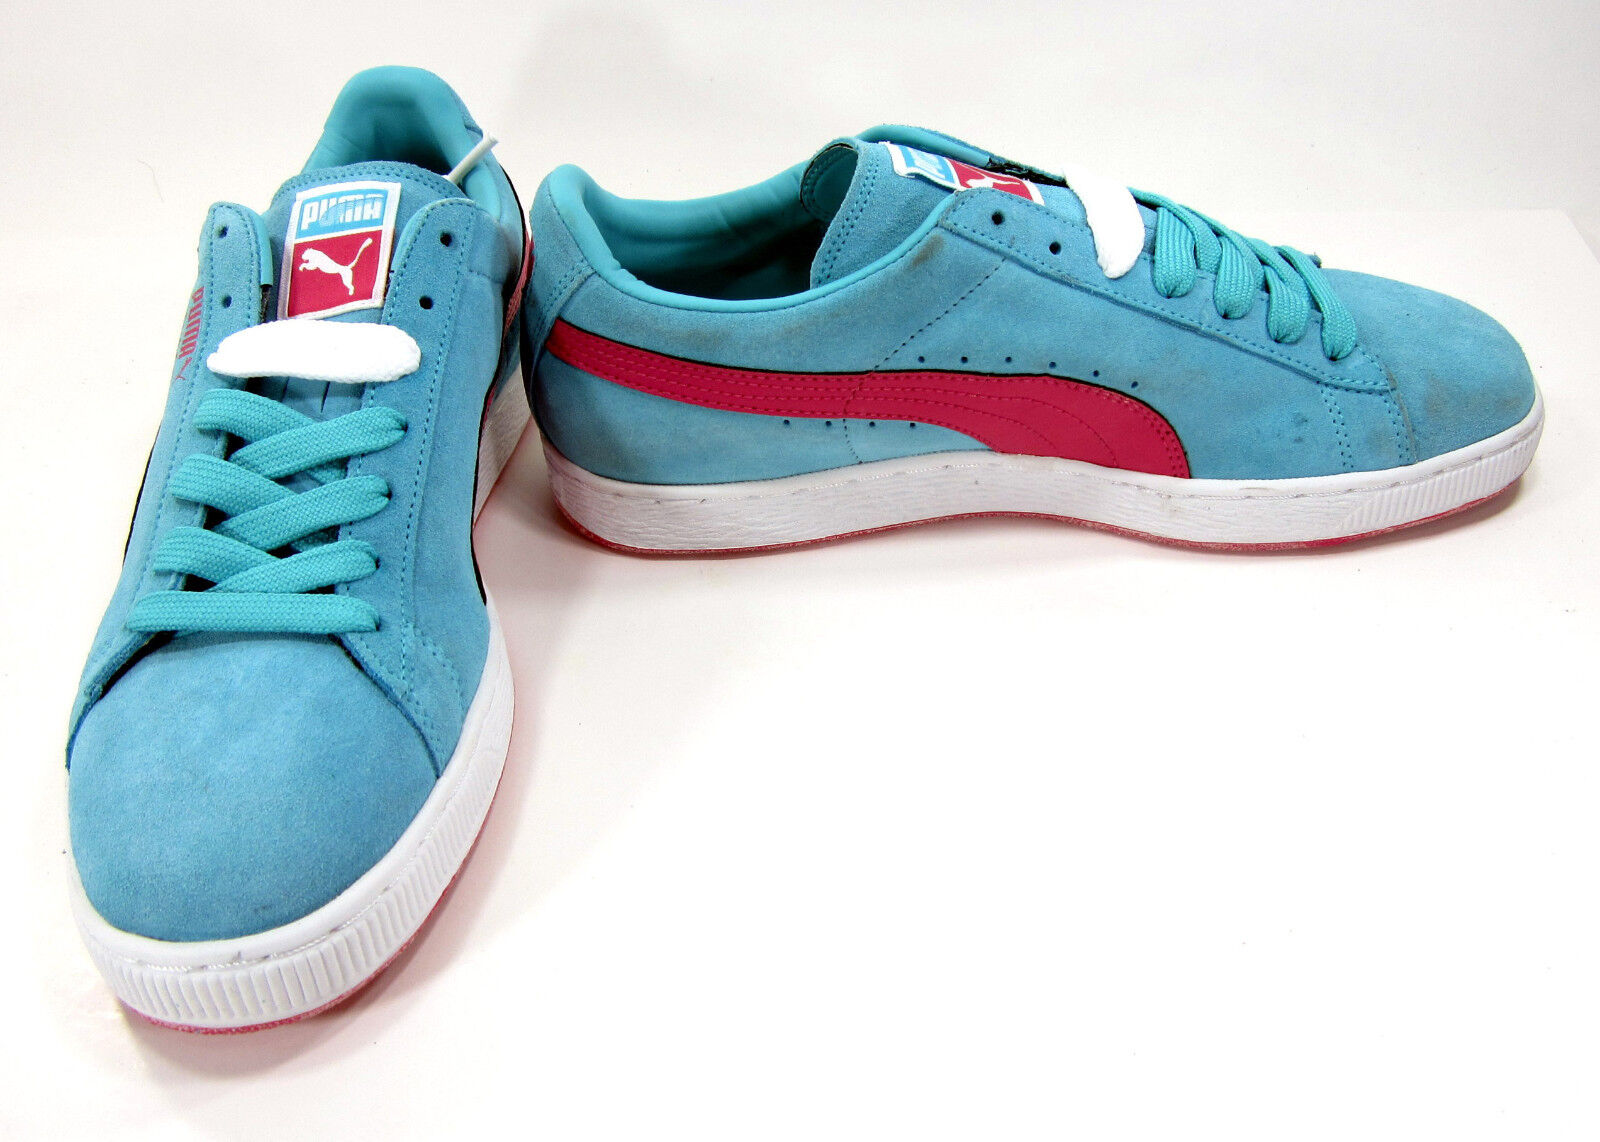 Puma shoes Classic Suede Light Baby bluee Sneakers Size 10